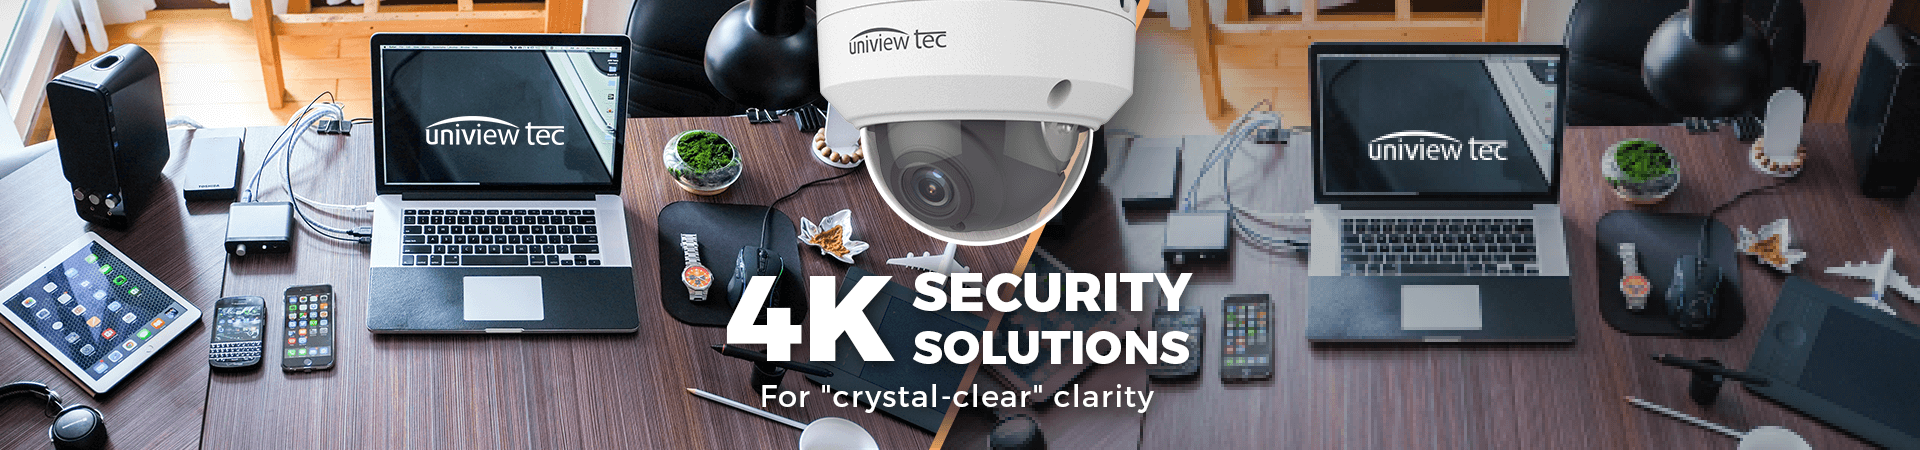 4k Security Solutions